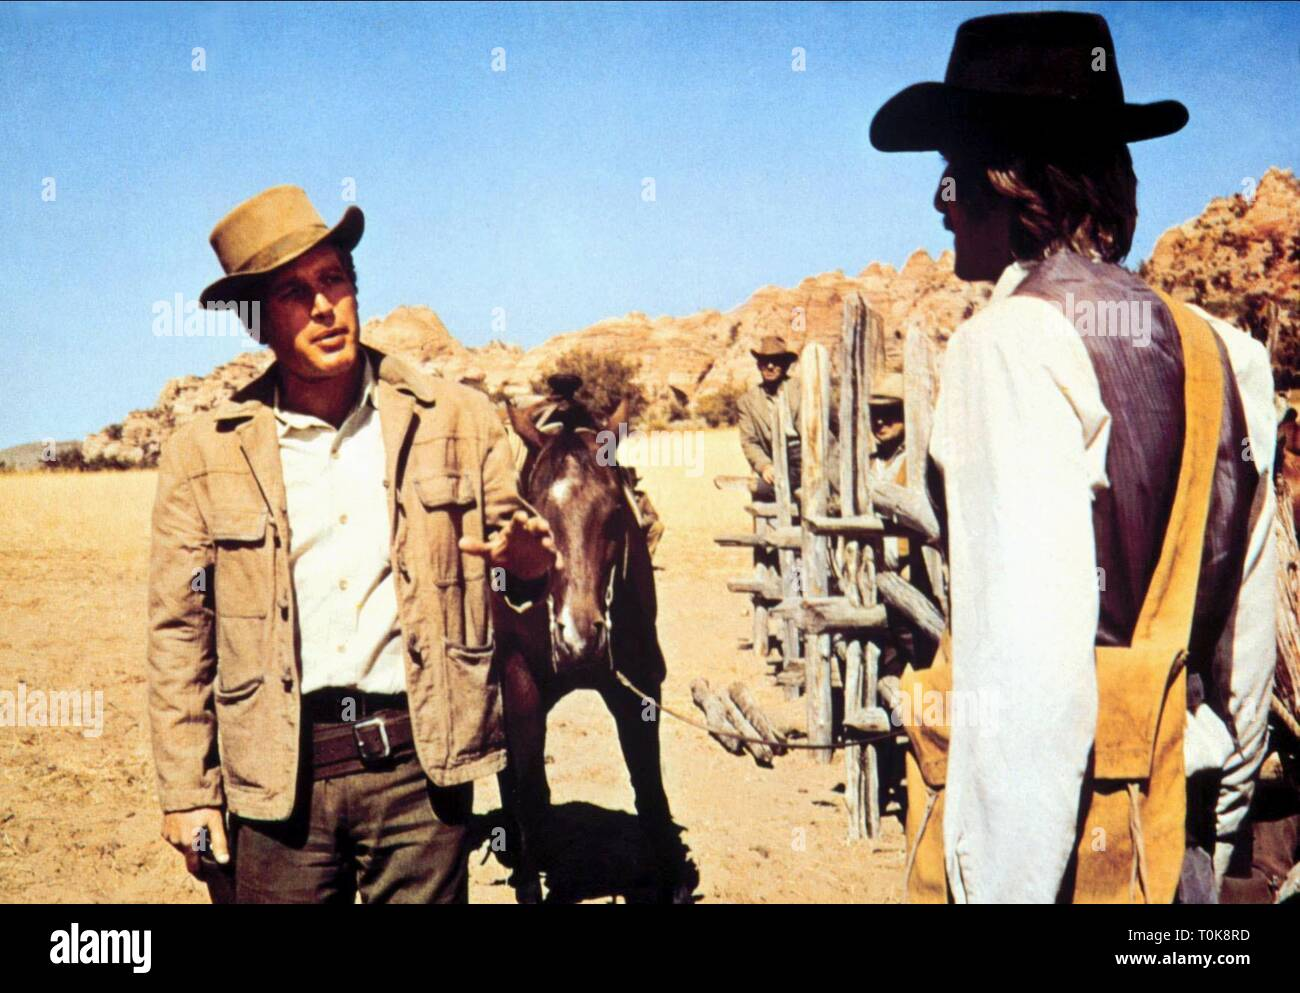 PAUL NEWMAN, BUTCH CASSIDY AND THE SUNDANCE KID, 1969 - Stock Image